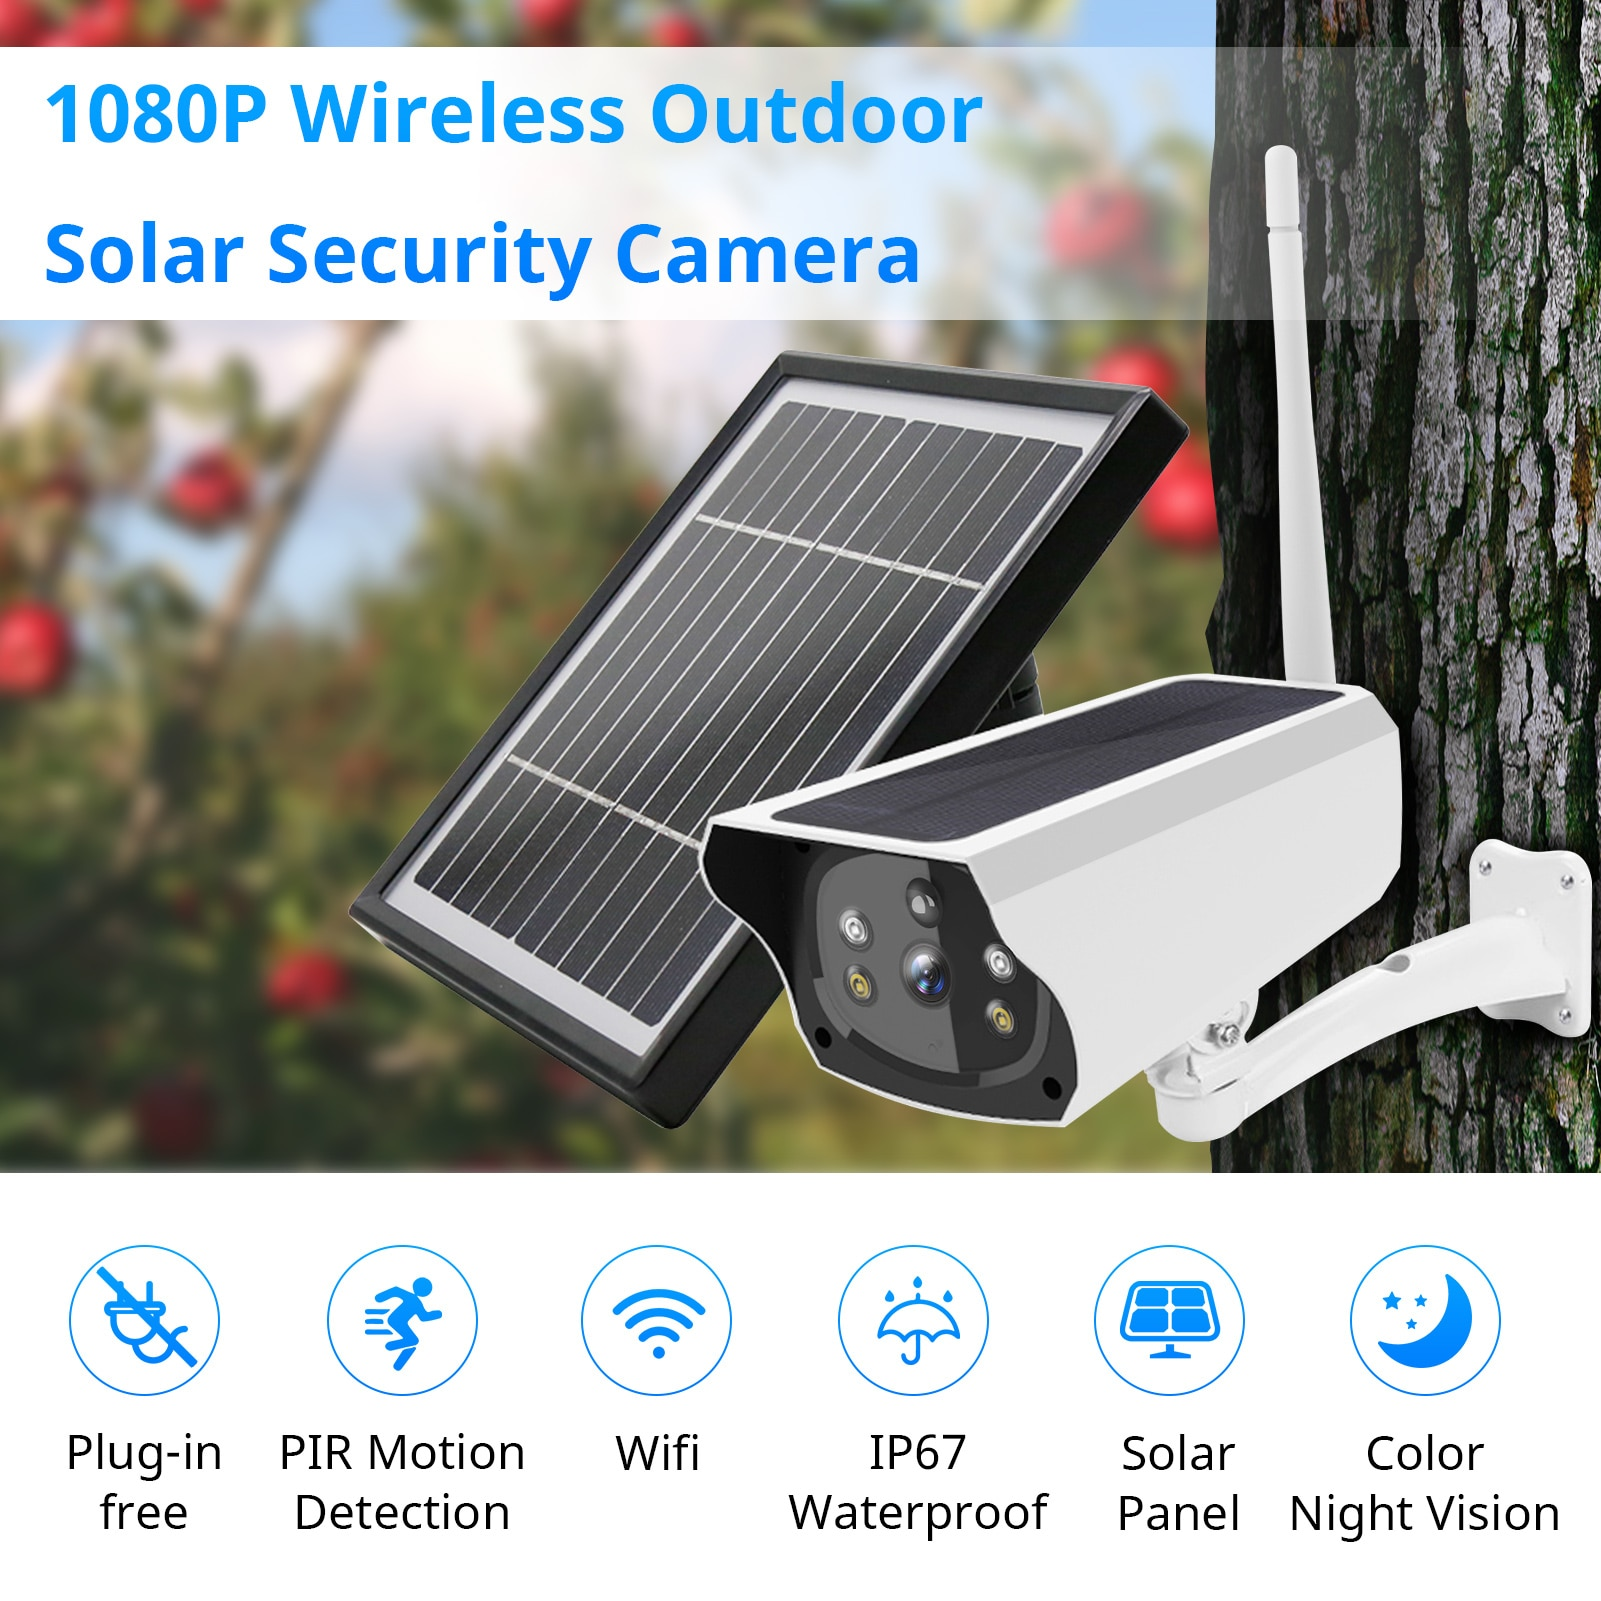 Outdoor Solar Security Camera Wireless Rechargeable Battery 1080P Home Surveillance Camera Support Night Vision Motion Detection